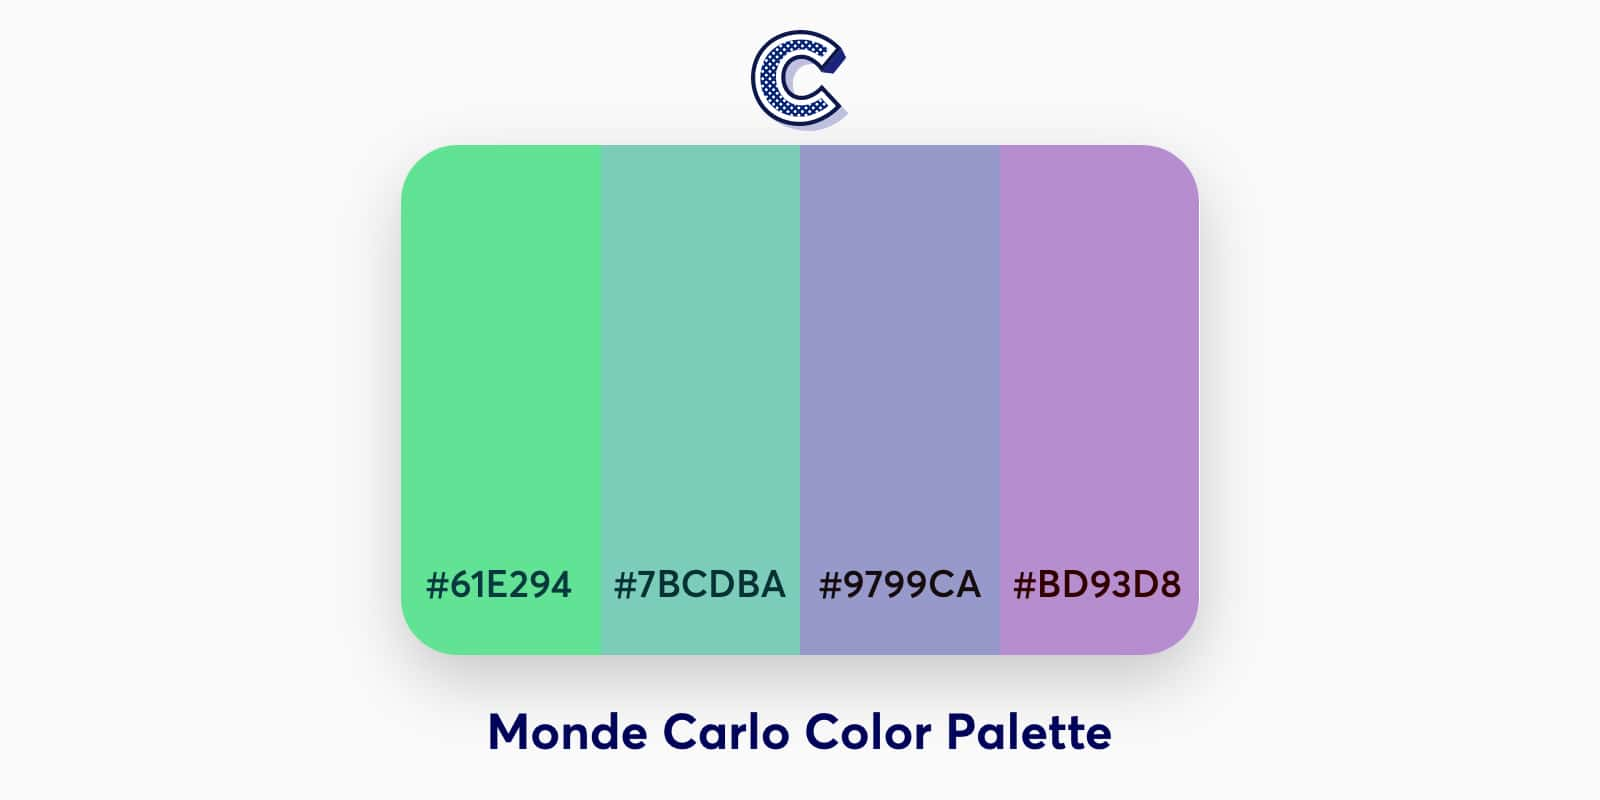 the featured image of monde carlo color palette